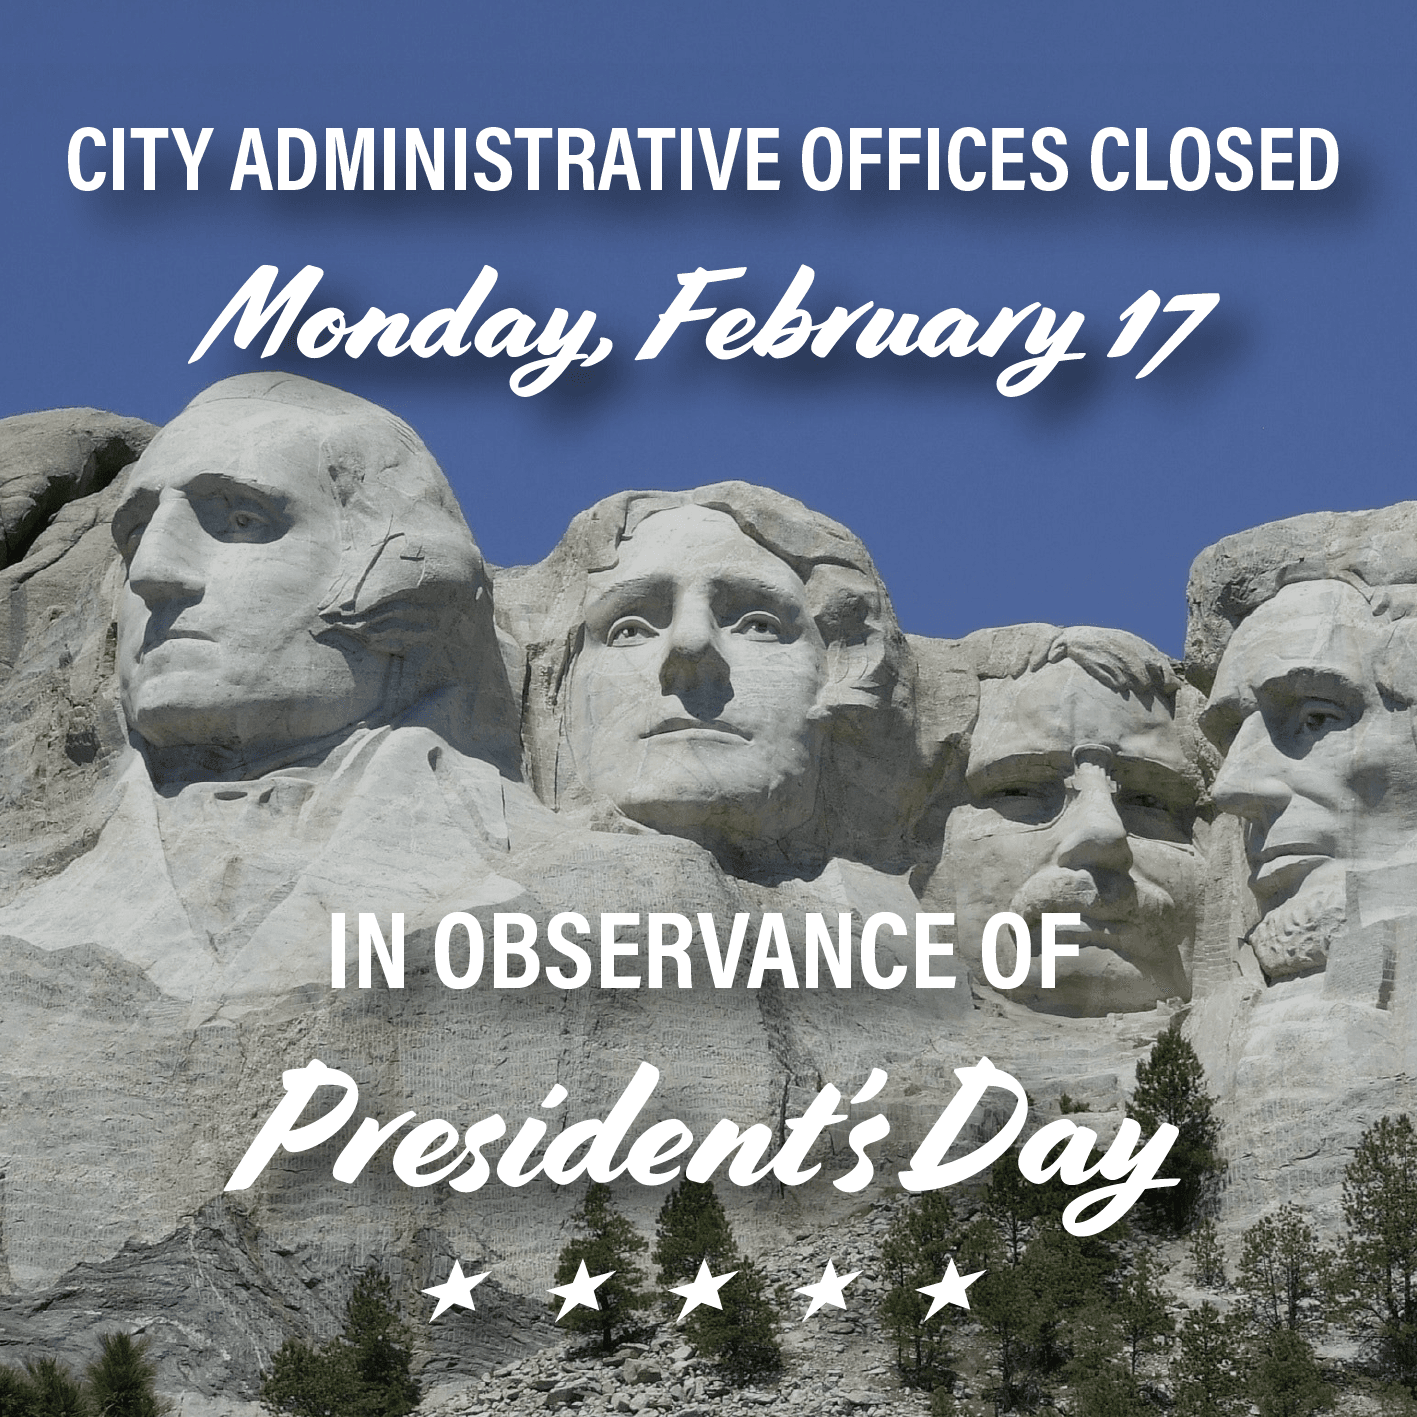 Presidents Day Closure 2020